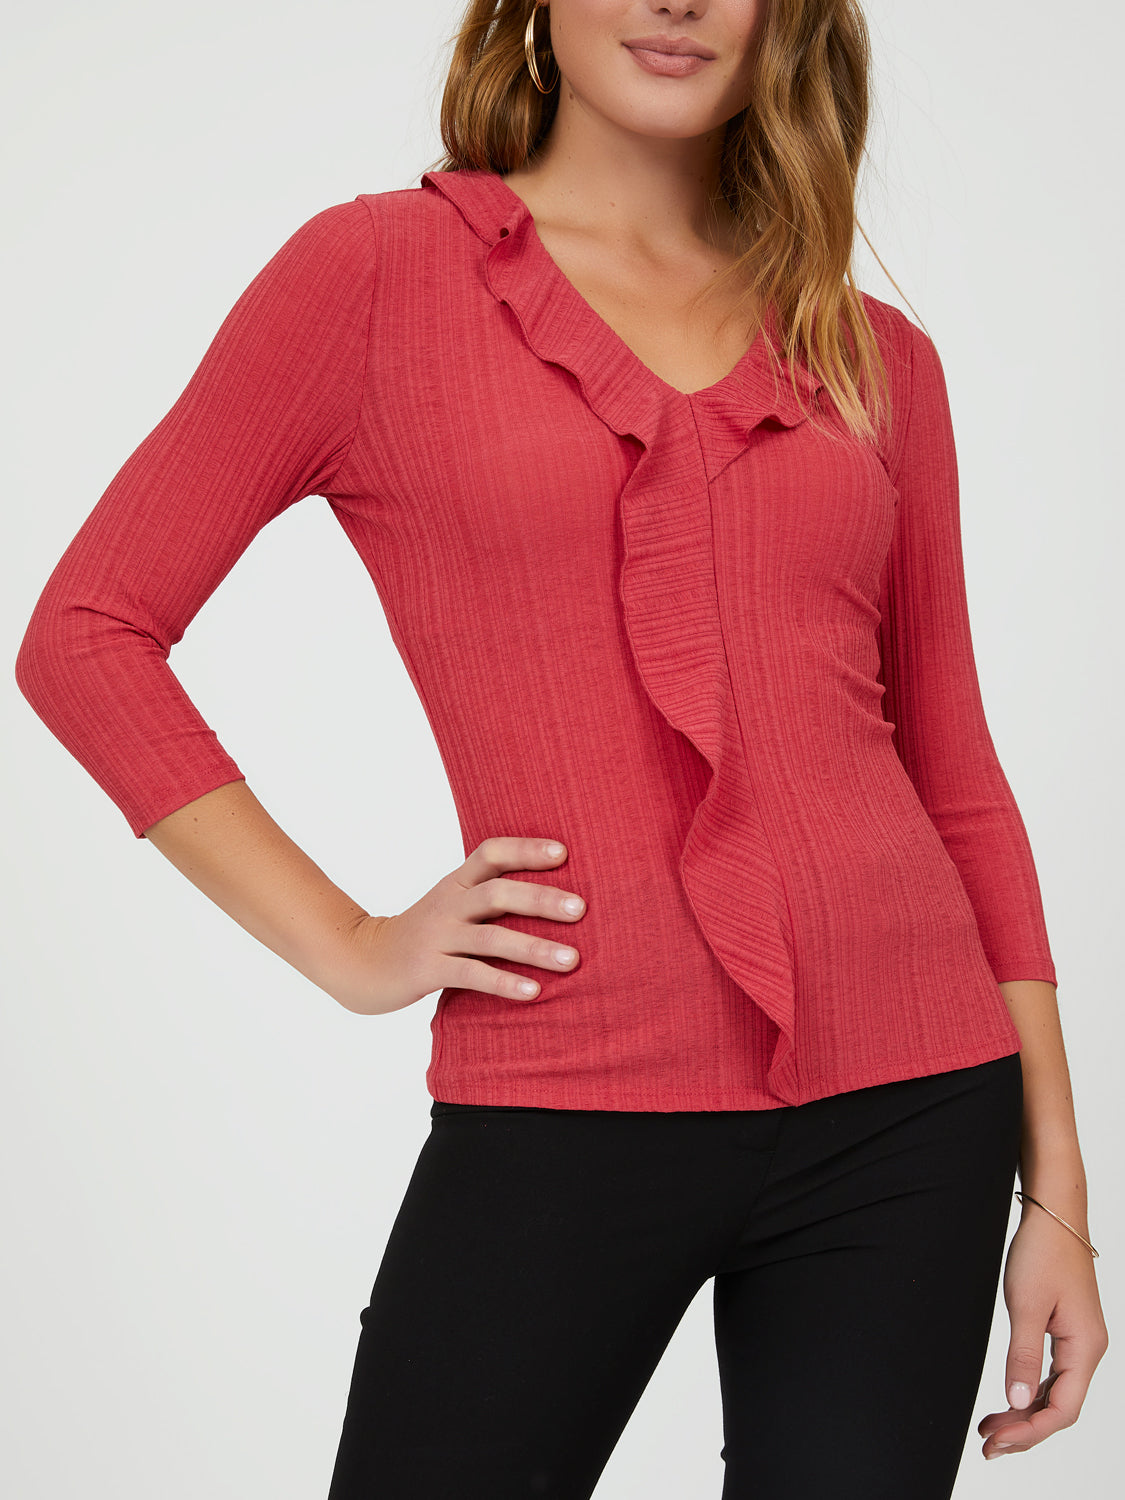 Variegated Rib Knit Ruffle Top